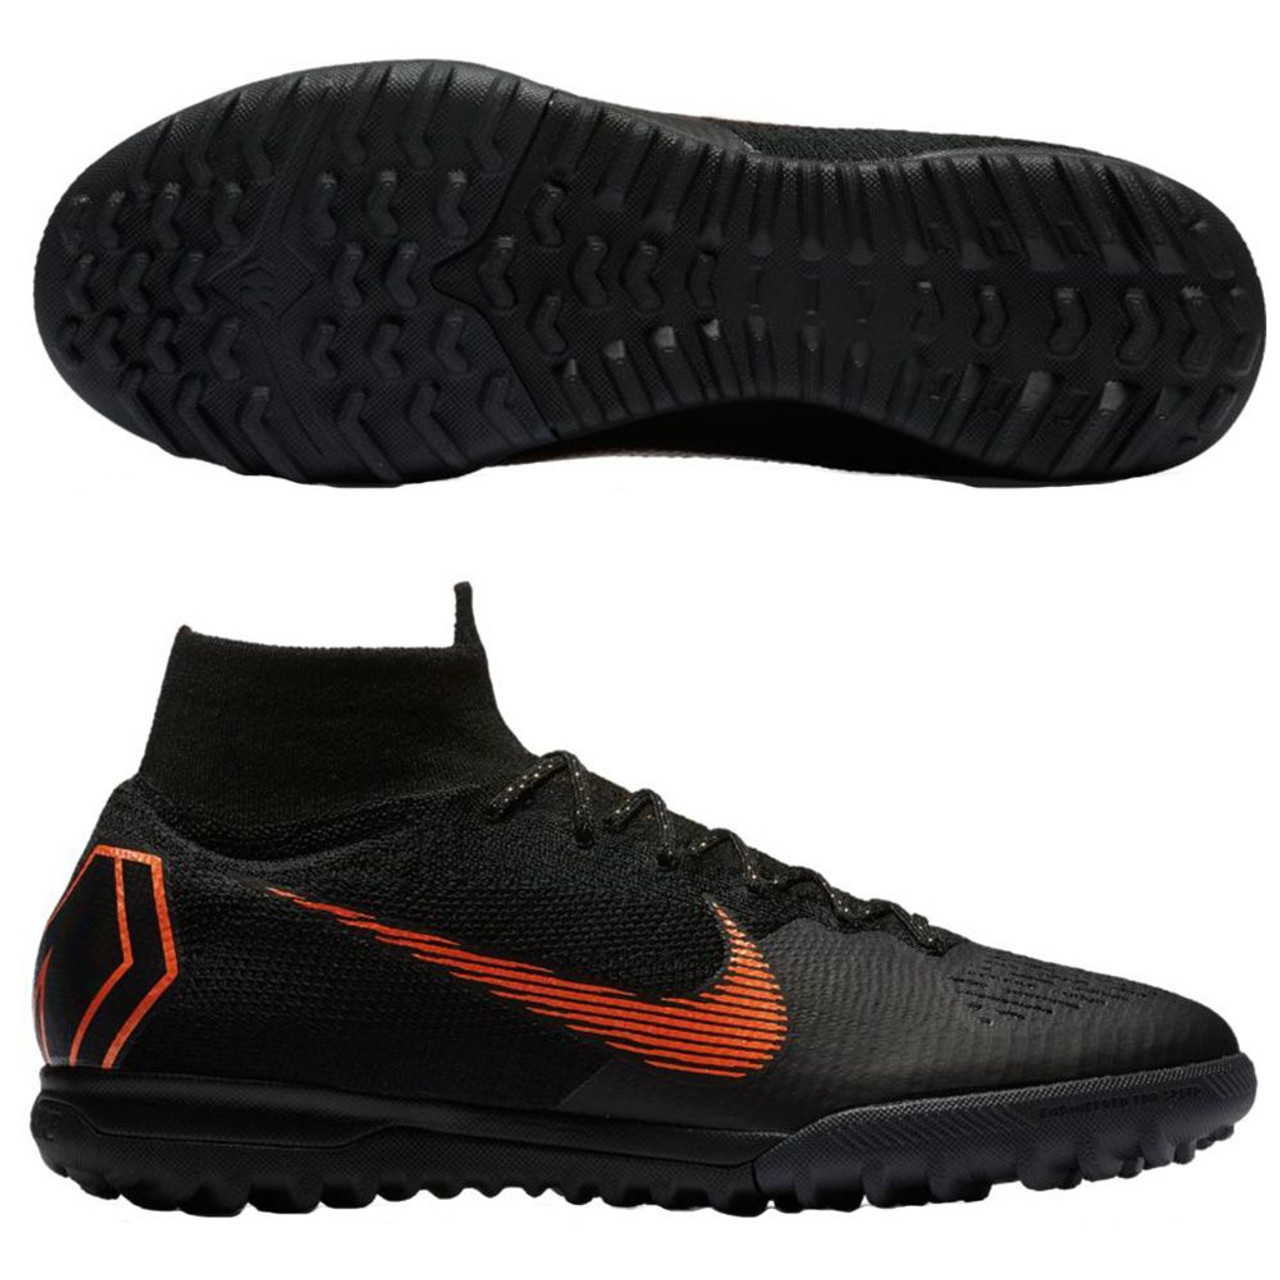 new arrival ee0de 13dee NIKE MERCURIAL SUPERFLY X VI ELITE TF Artificial Turf Soccer Shoe - Black Total  Orange - Soccer Plus